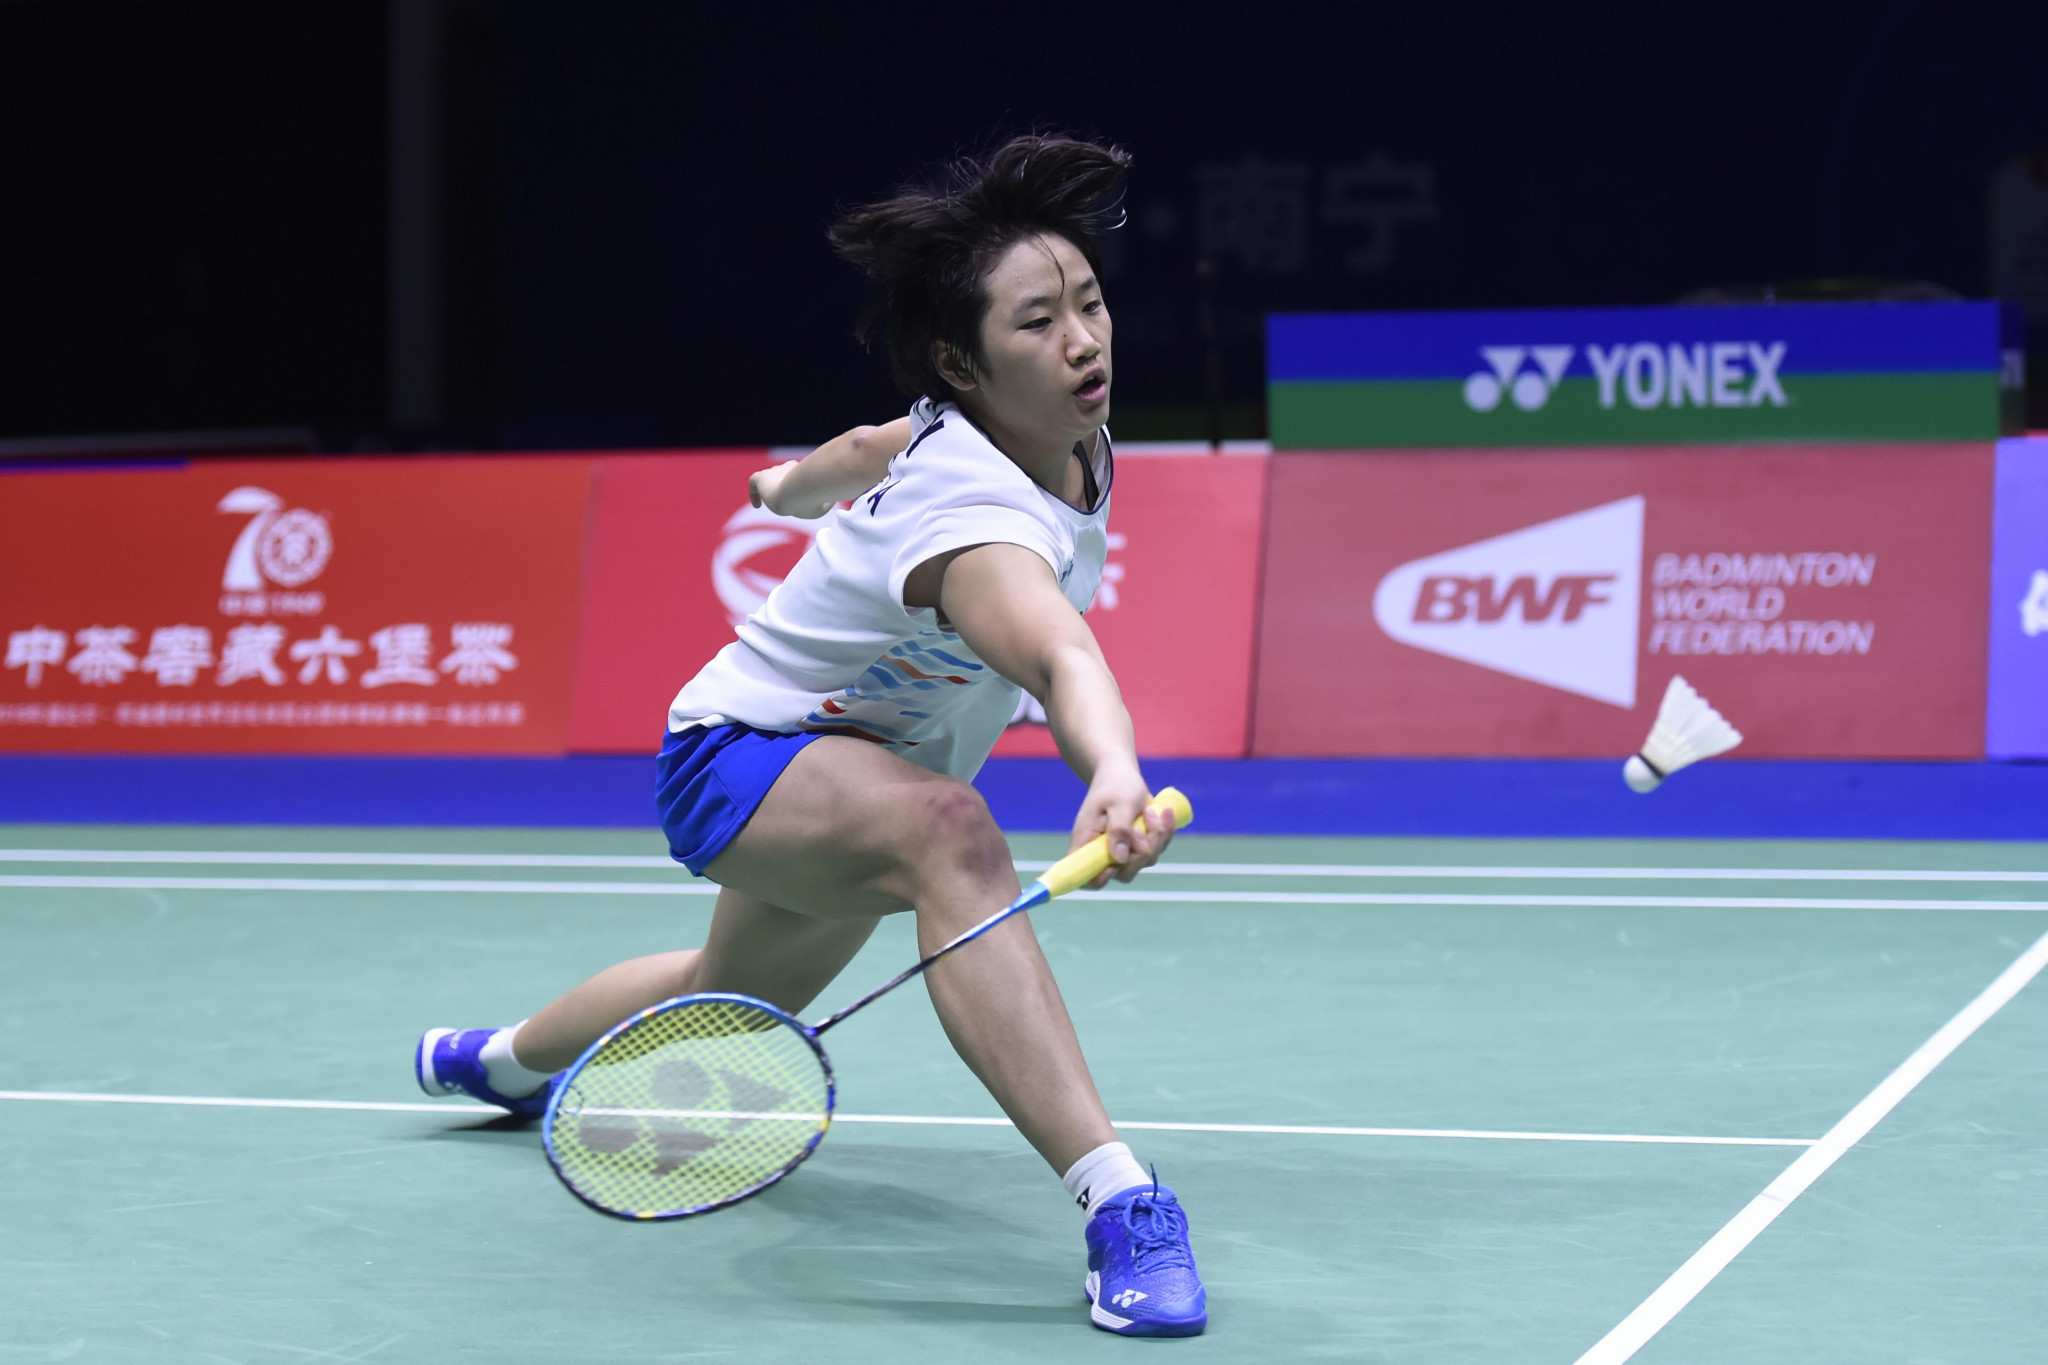 An upsets top seed Li to reach semi-finals at BWF Canada Open